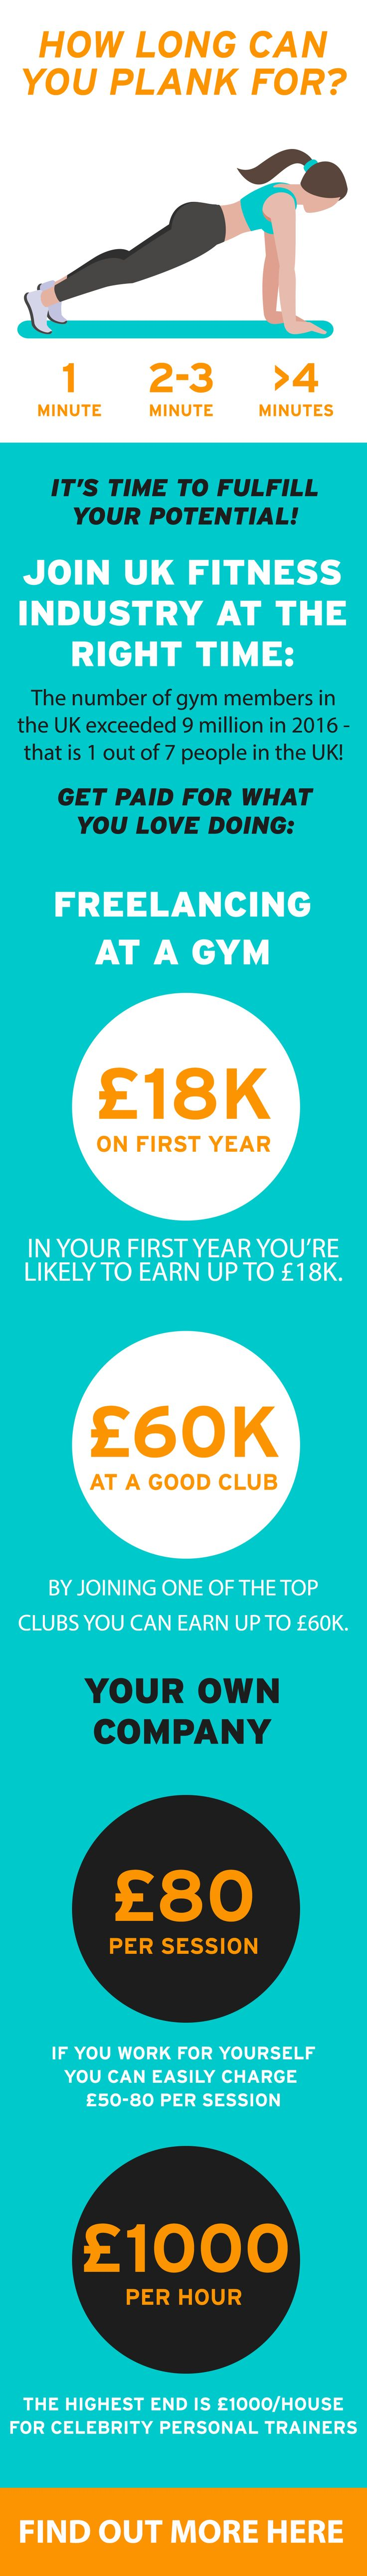 Want a career that works out for you? You could be earning up to £40k in just 6 weeks. Personal training courses put you in pole position to kick start your career in the health and fitness industry. Whether you want to start your own business or work for a top gym, getting qualified will give you the skills and knowledge to take the next step towards your dream career. Just enter a few details including your number and email and we'll help guide you through the process.